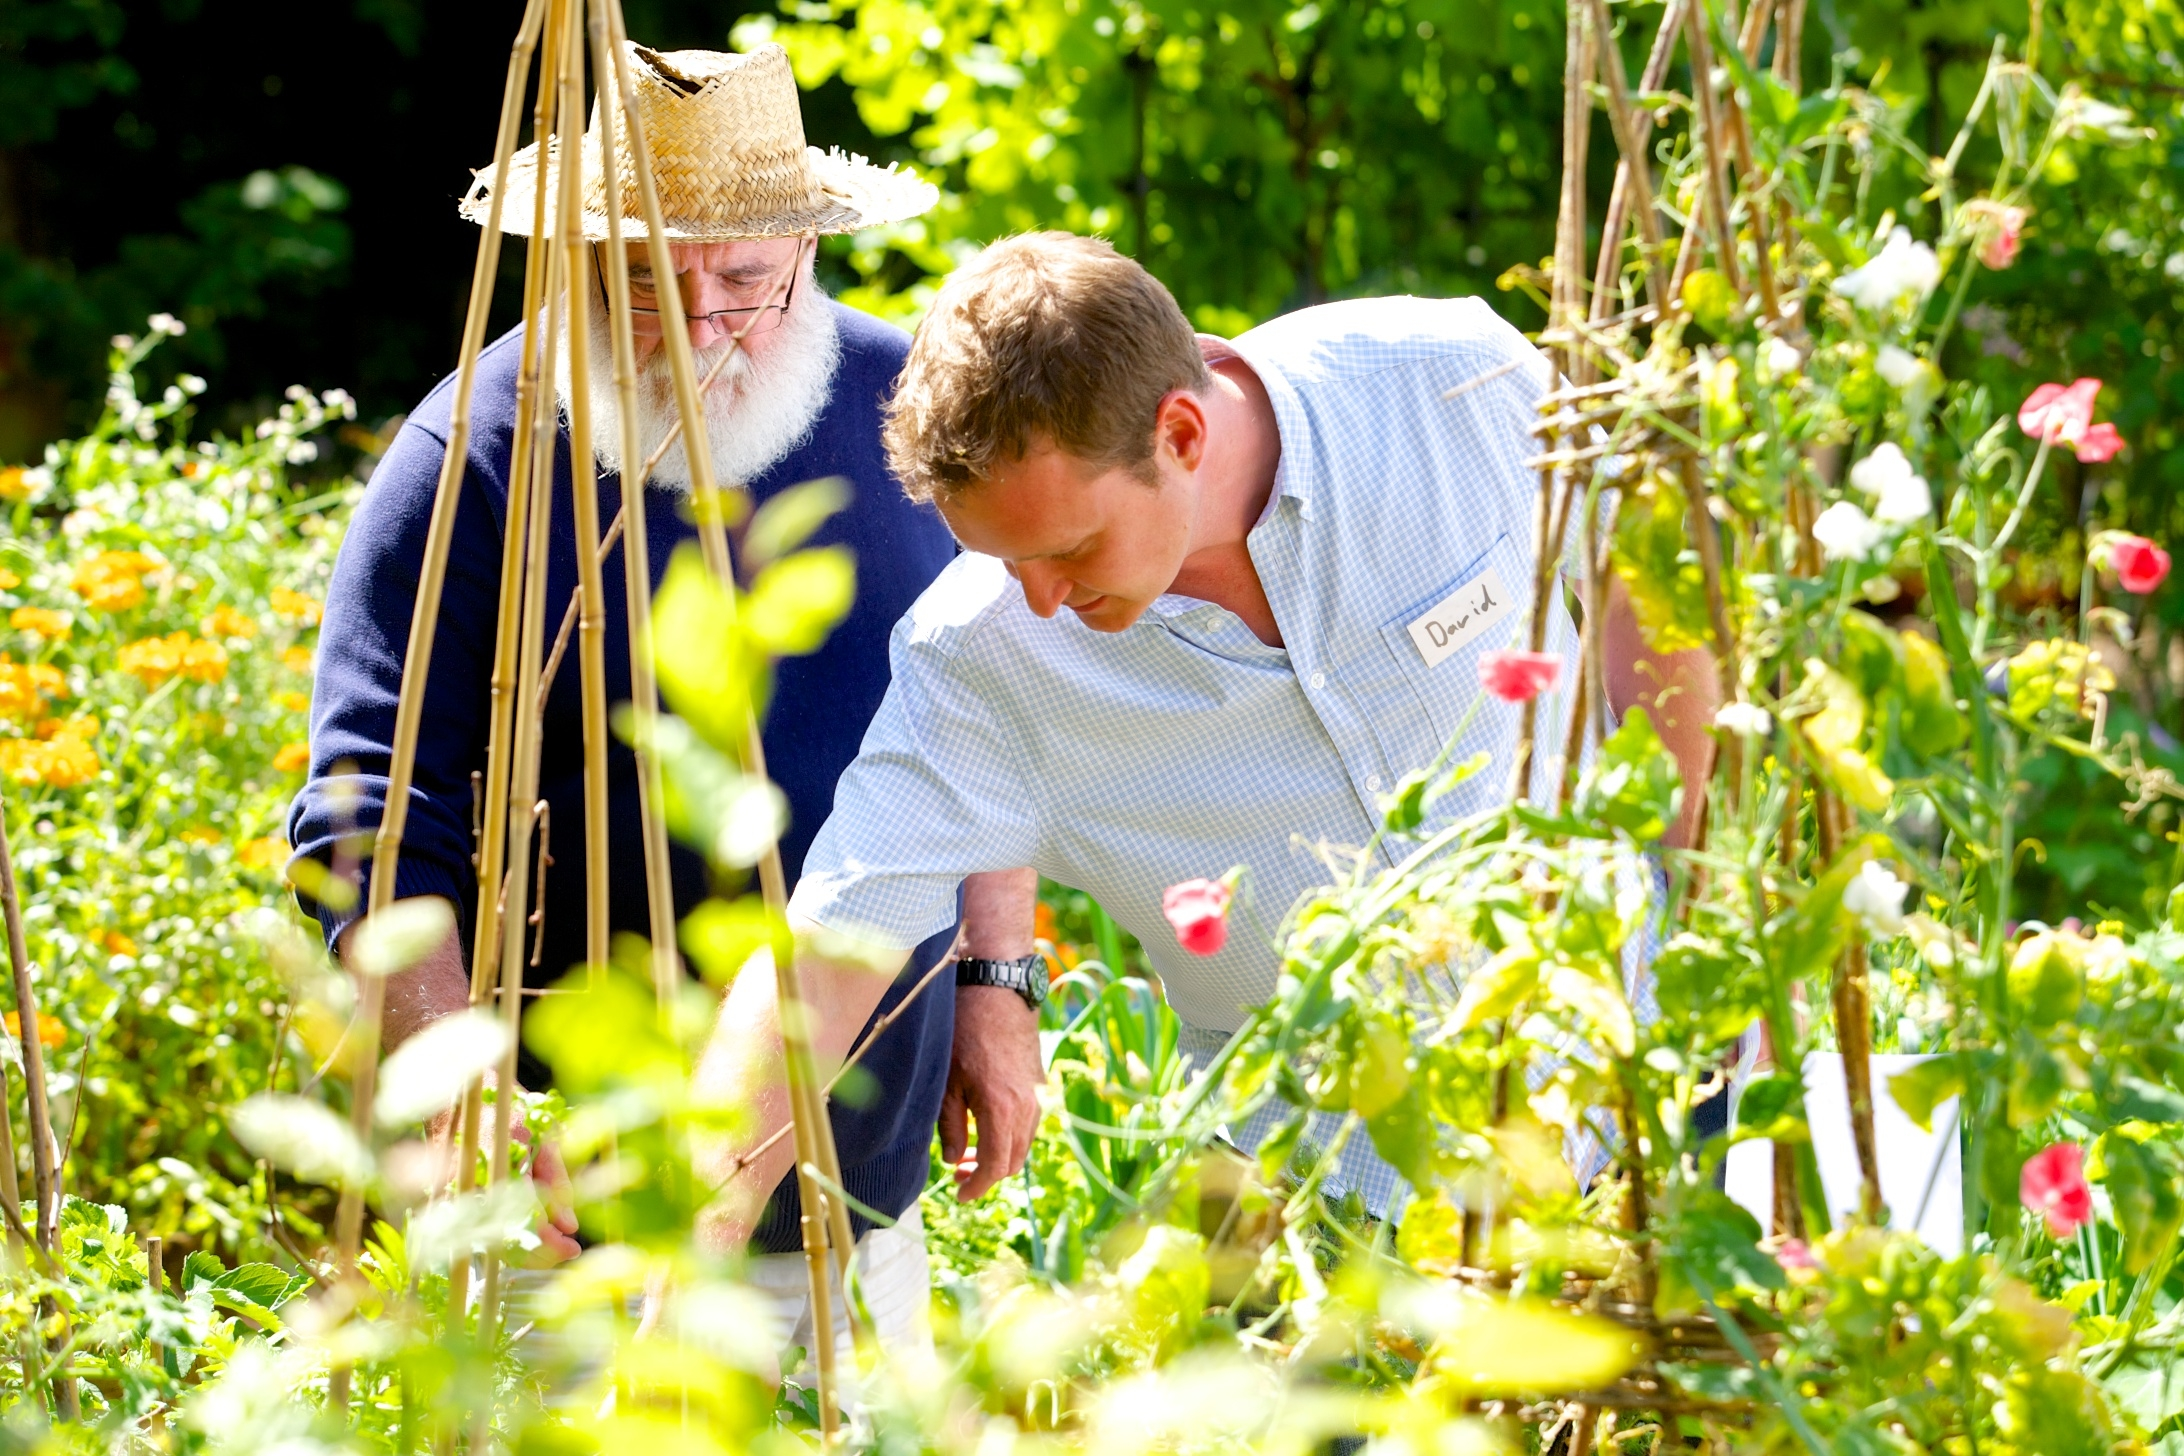 a highly discussed topic within healthcare as to whether or not those with cancer dementia and mental health problems can benefit from gardening